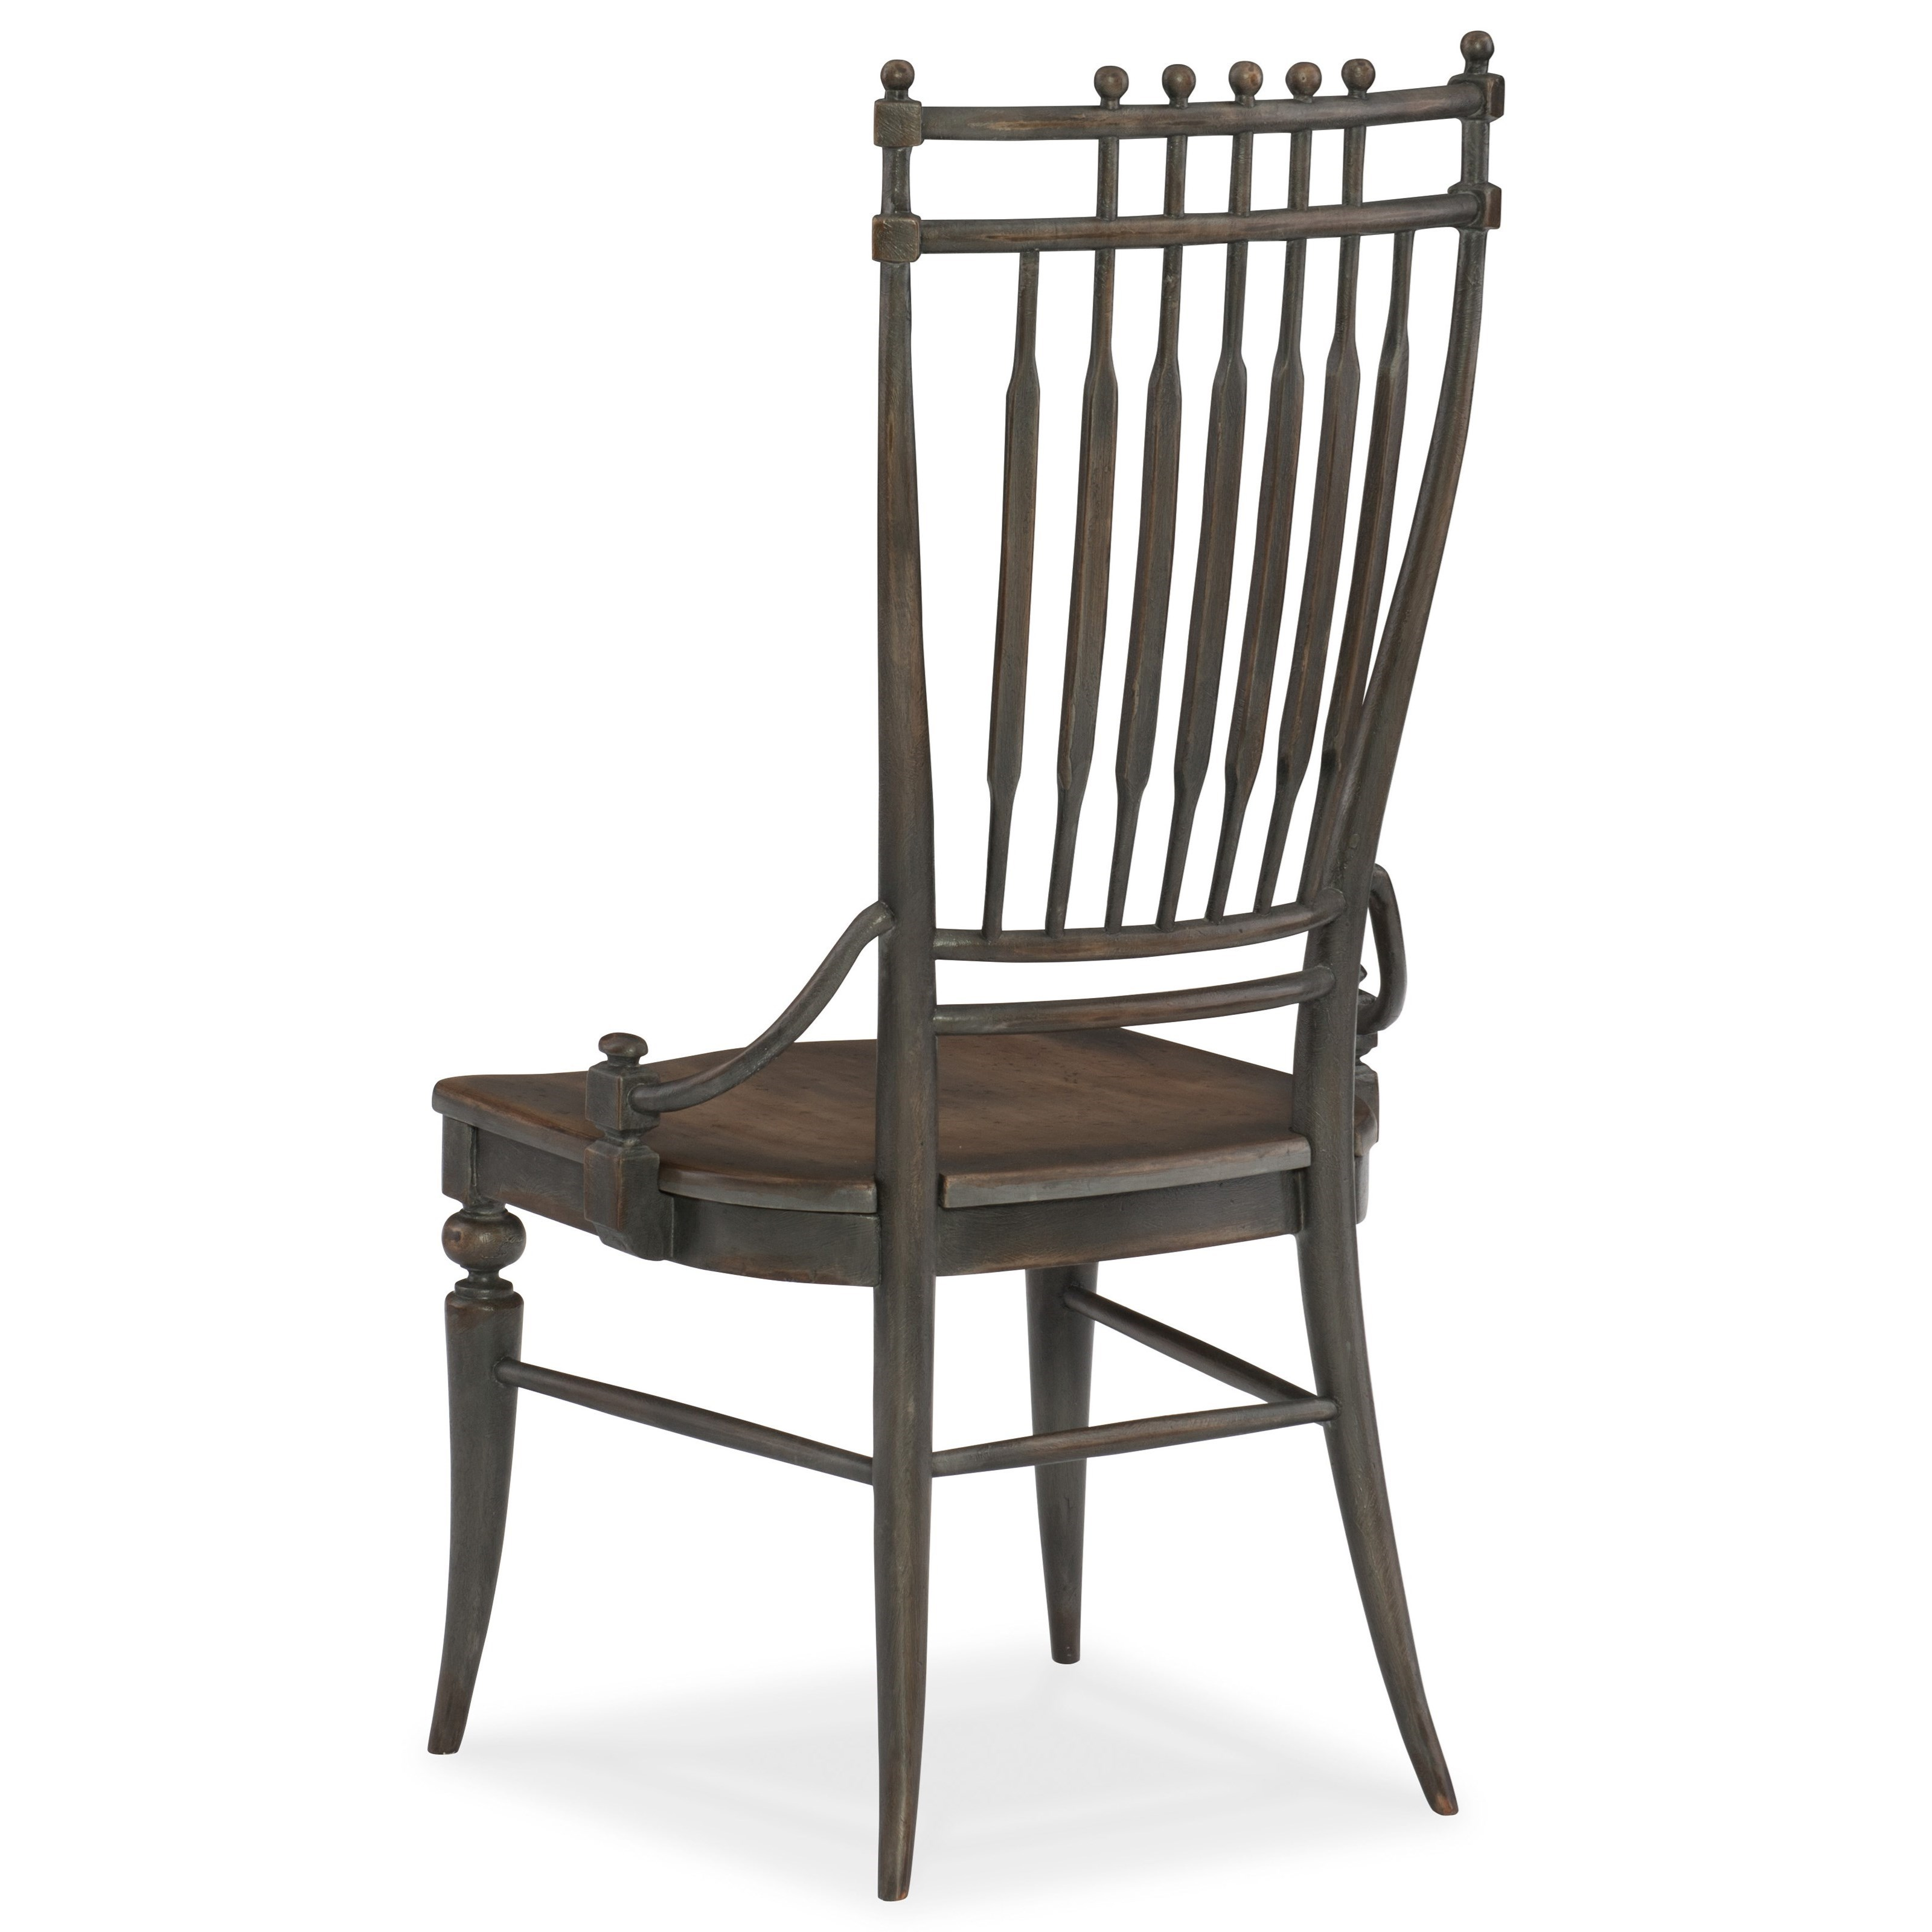 Hooker Furniture Arabella Windsor Side Chair - Item Number: 1610-75310A-GRY